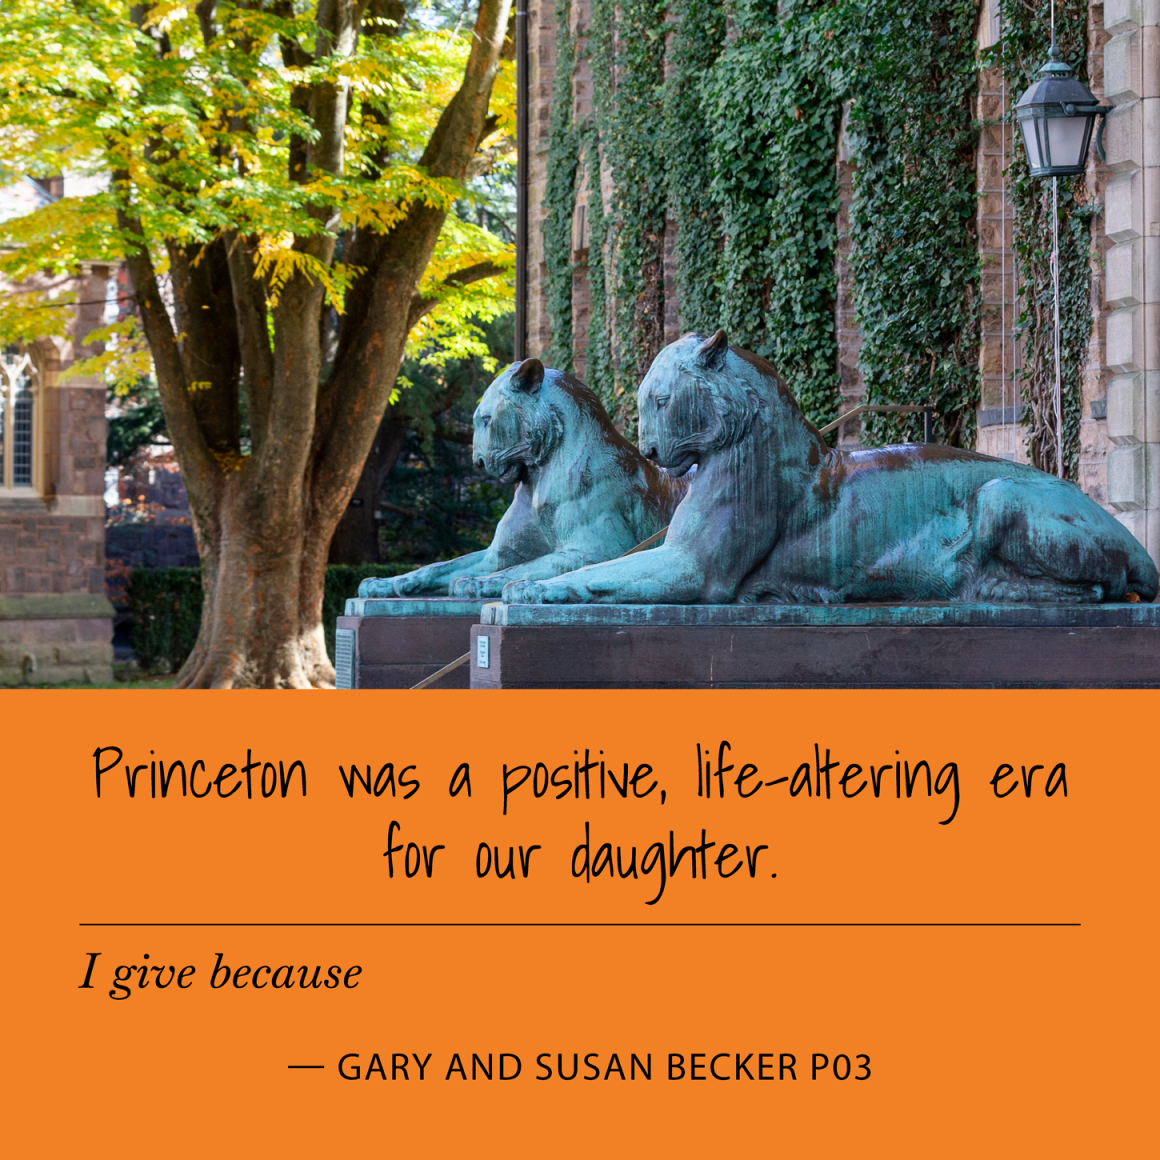 I give because Princeton was a positive, life-altering era for our daughter. Gary and Susan Becker P03